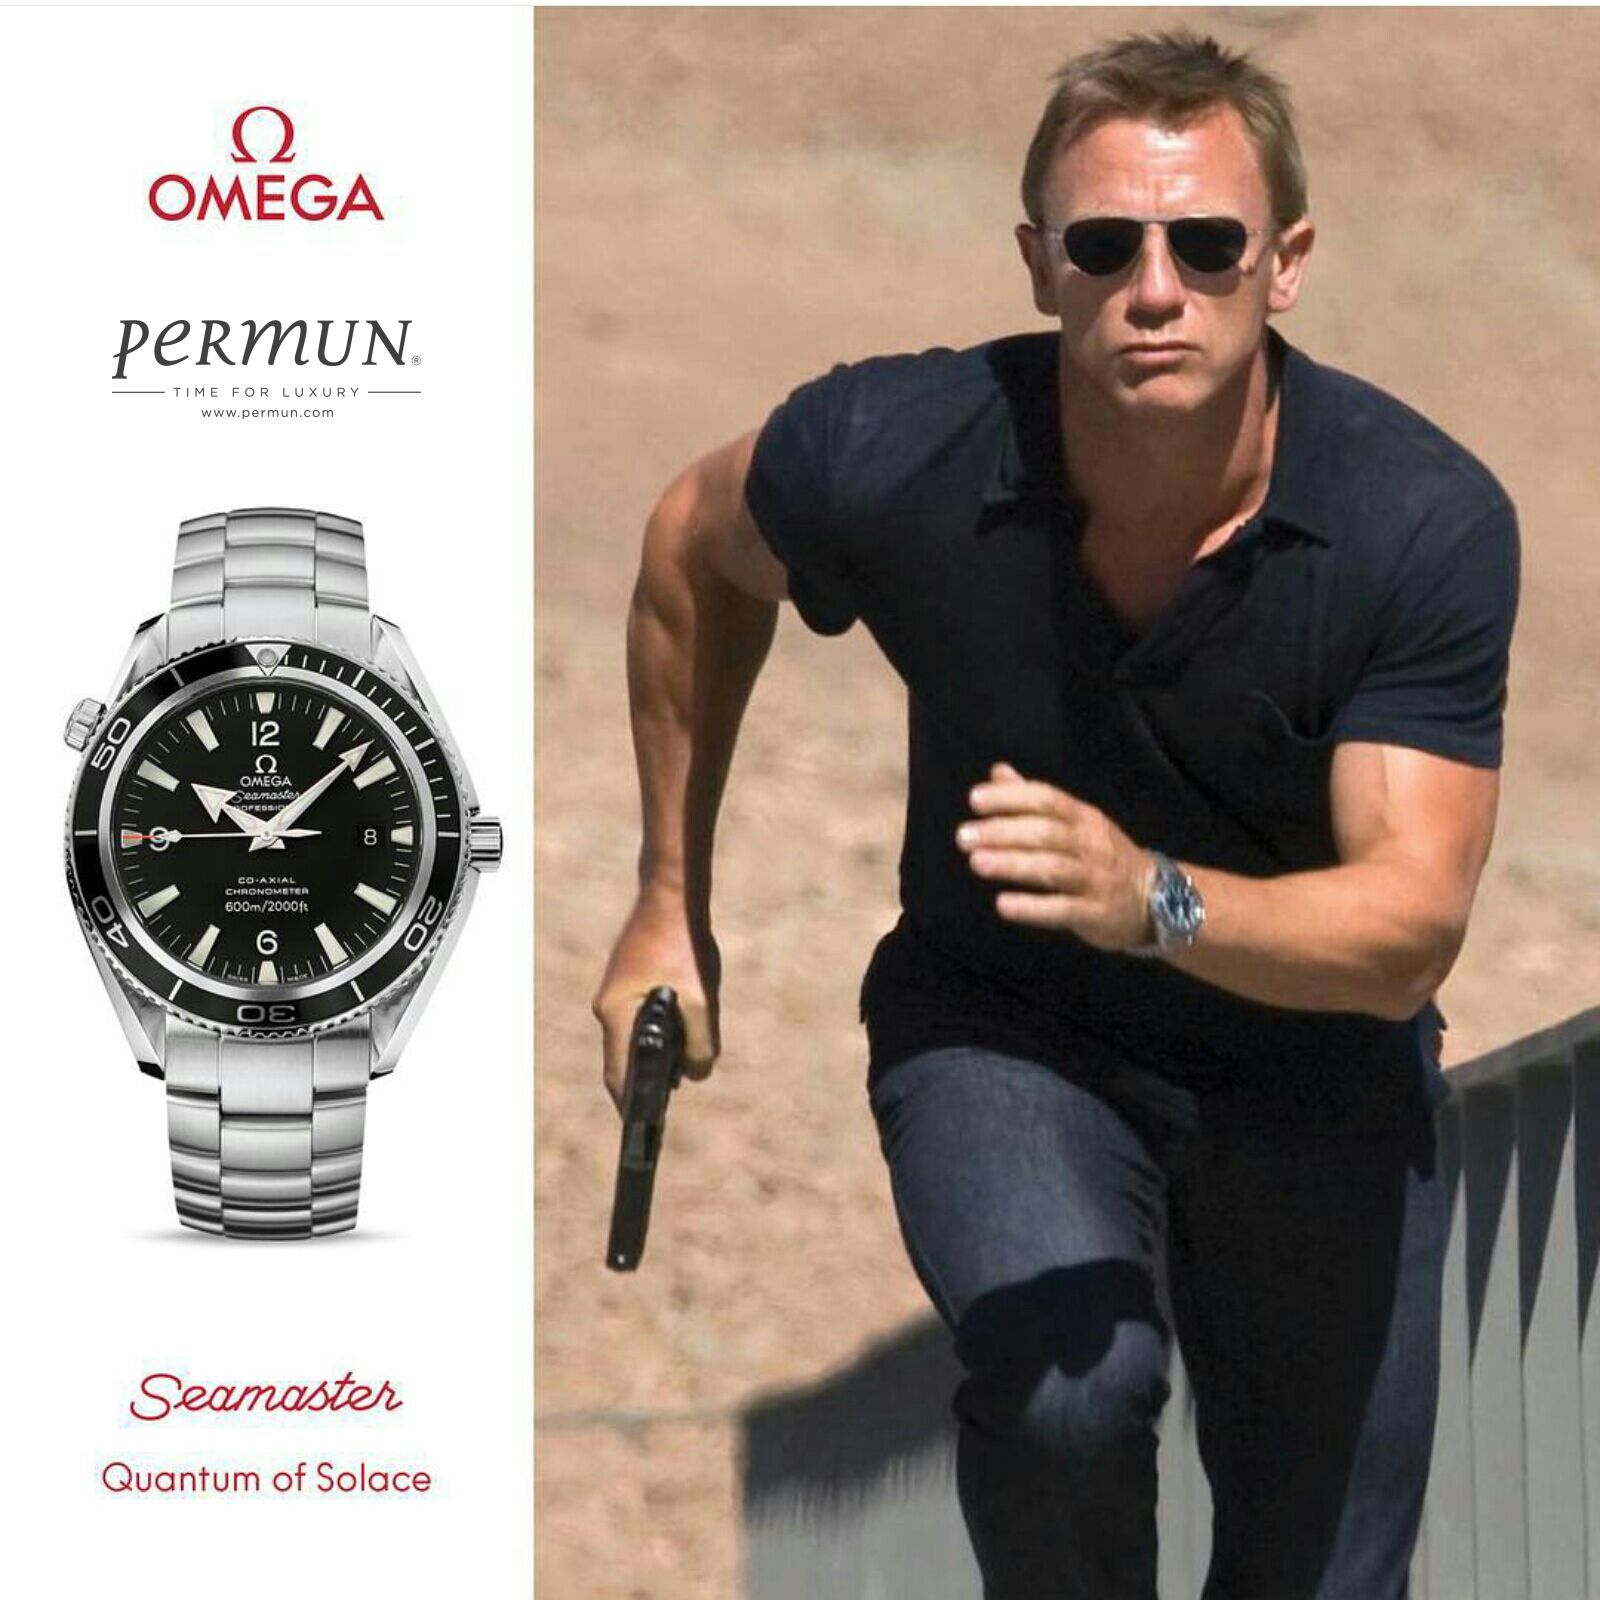 Omega Seamaster Quantum Of Solace Www Permun Com Tel 0 224 241 31 31 Omega Hediye Yeniyil Yilbasi Luxury Men Are From Mars Omega Photo And Video